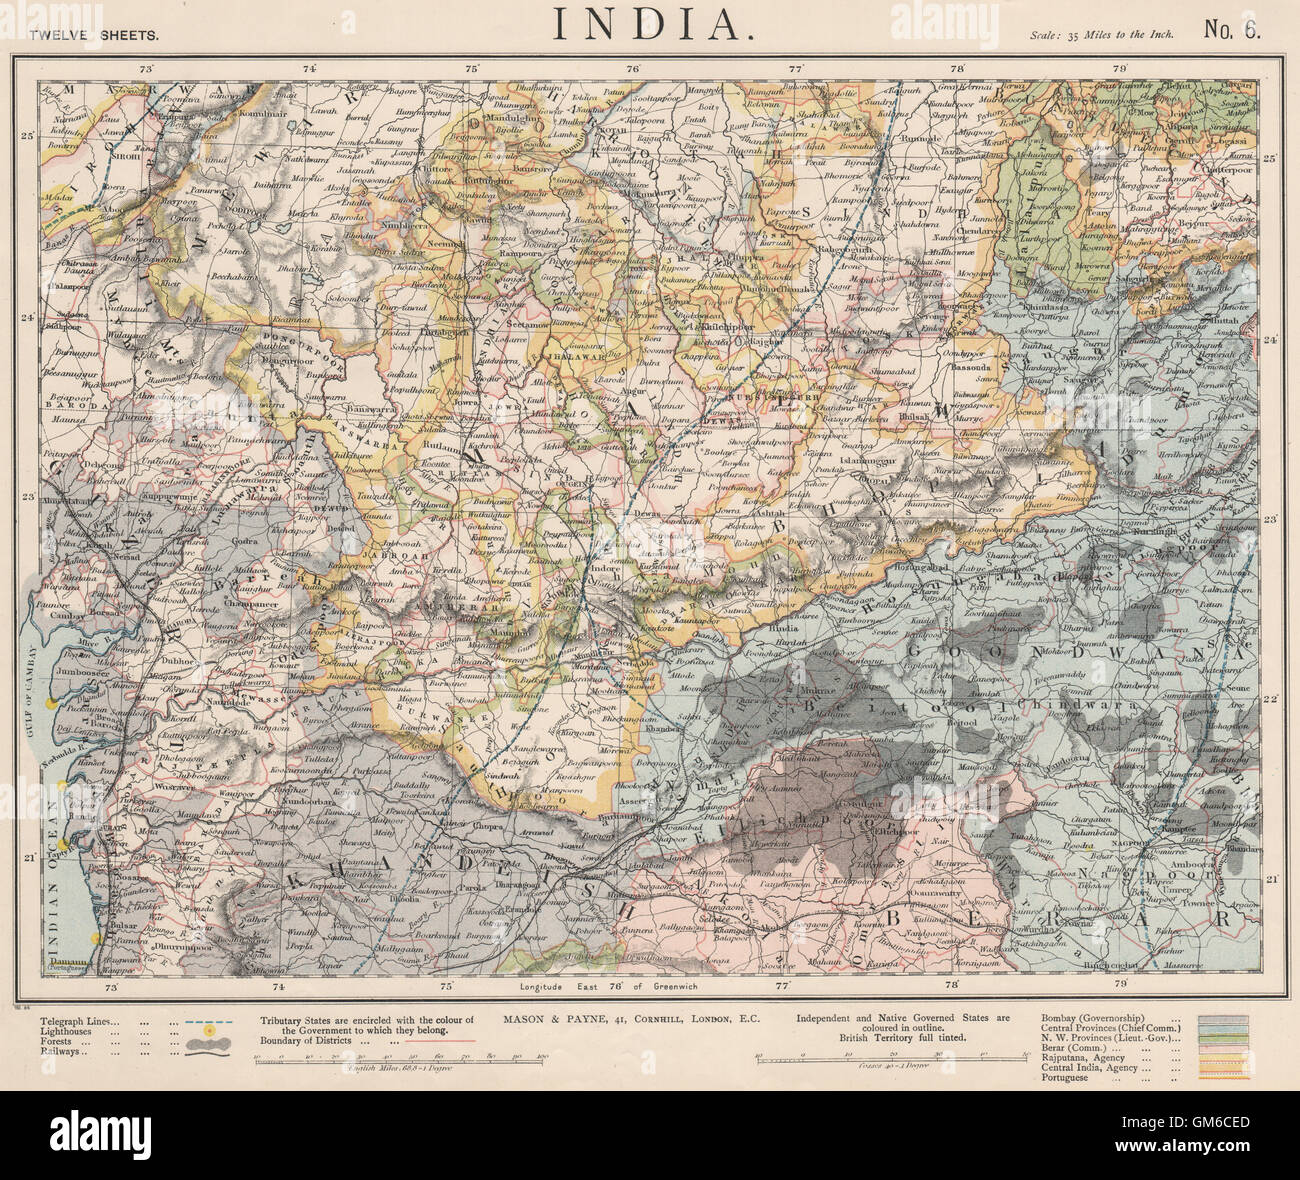 Goondwana Bhopal Sduk 1844 Map India.bundelkhand To Khandeish Berar.gujerat Art Prints Art